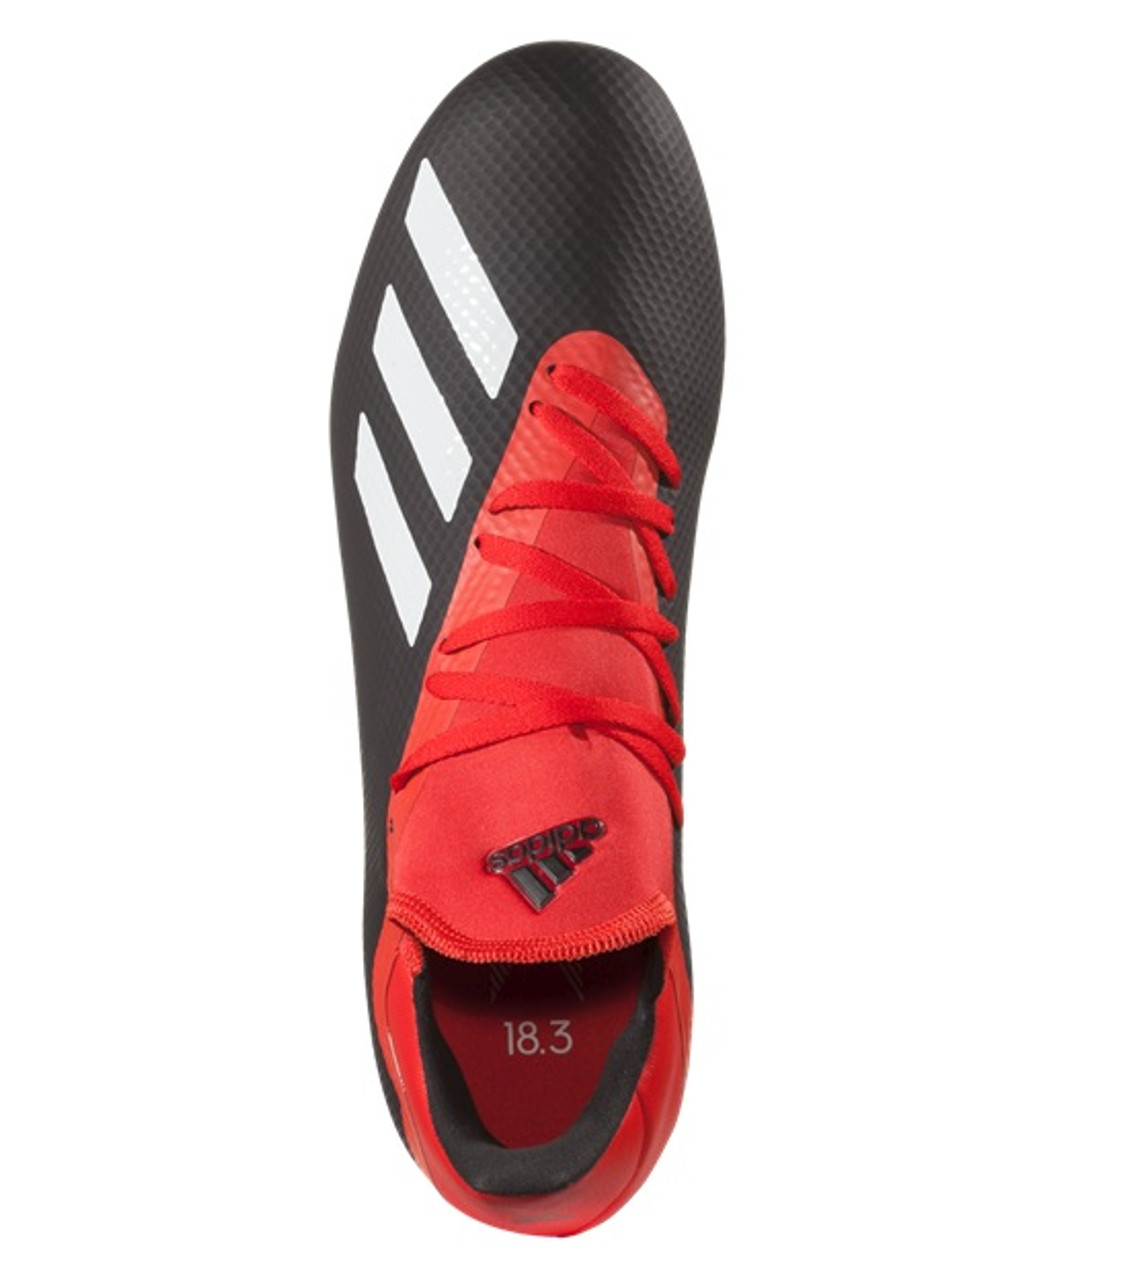 e951f1d460c Adidas X 18.3 FG - Core Black Off White Active Red Grey (030419 ...